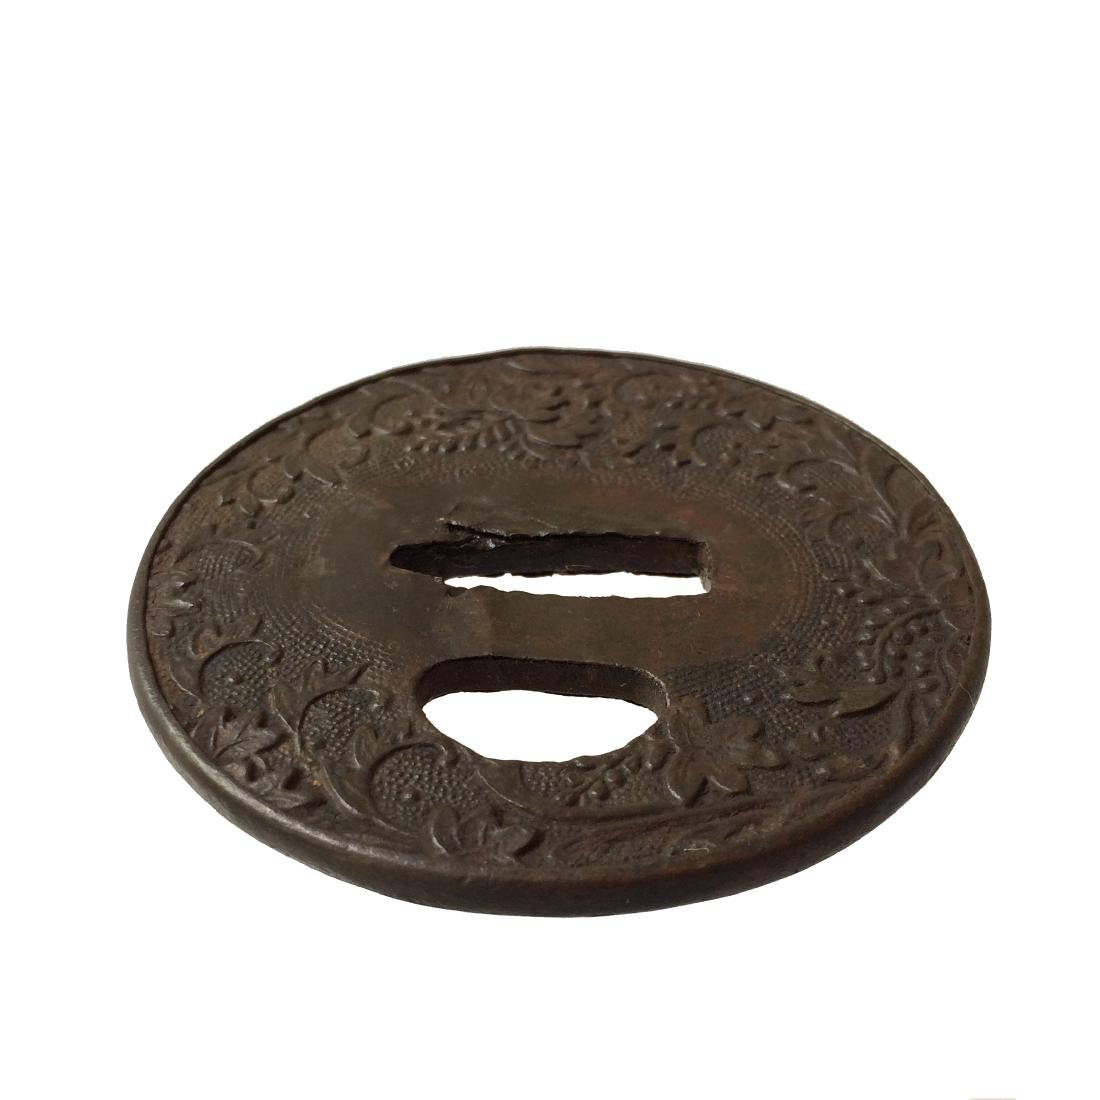 Repousse iron tsuba with floral design - 3